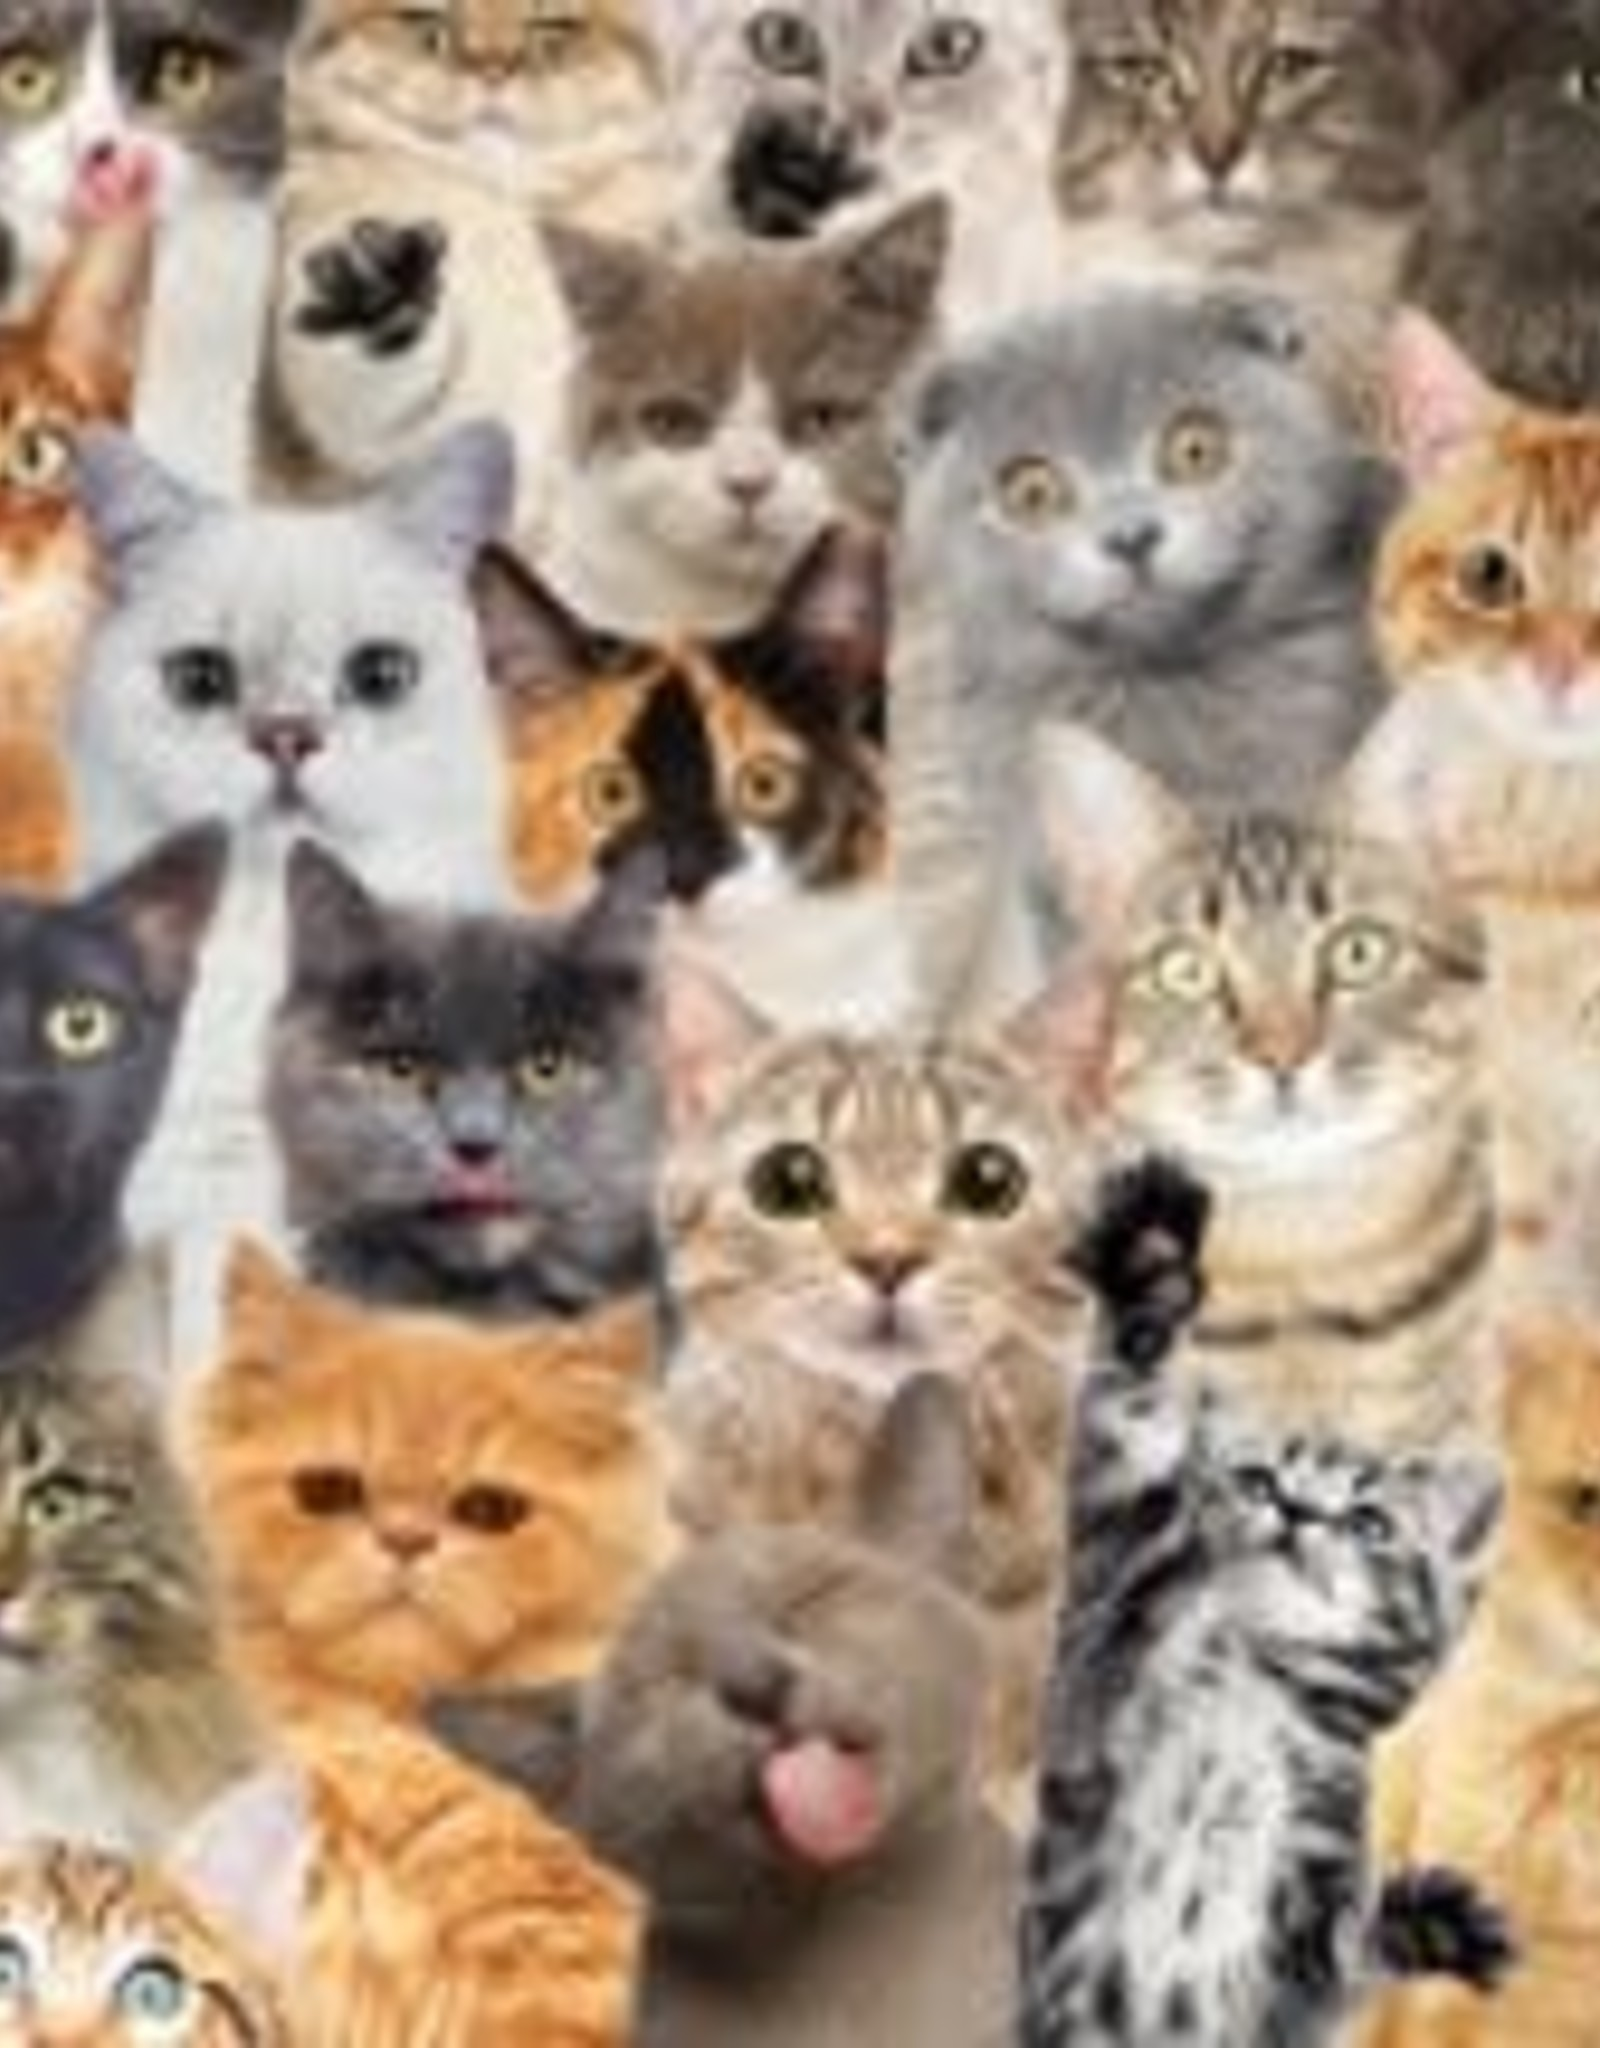 Peter Pauper Press Jigsaw Puzzle: All the Cats